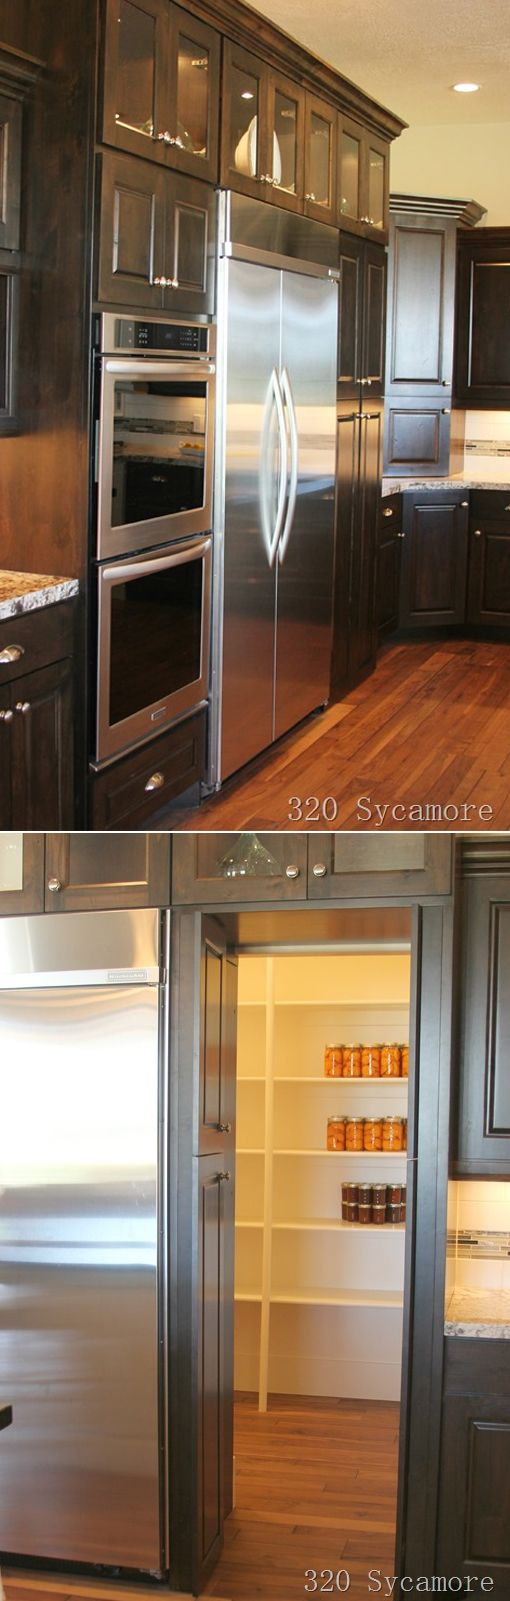 The door past the fridge looked like cabinets, but it opened up into a pantry behind allowing the fridge to be flush with everything else --- love that idea!